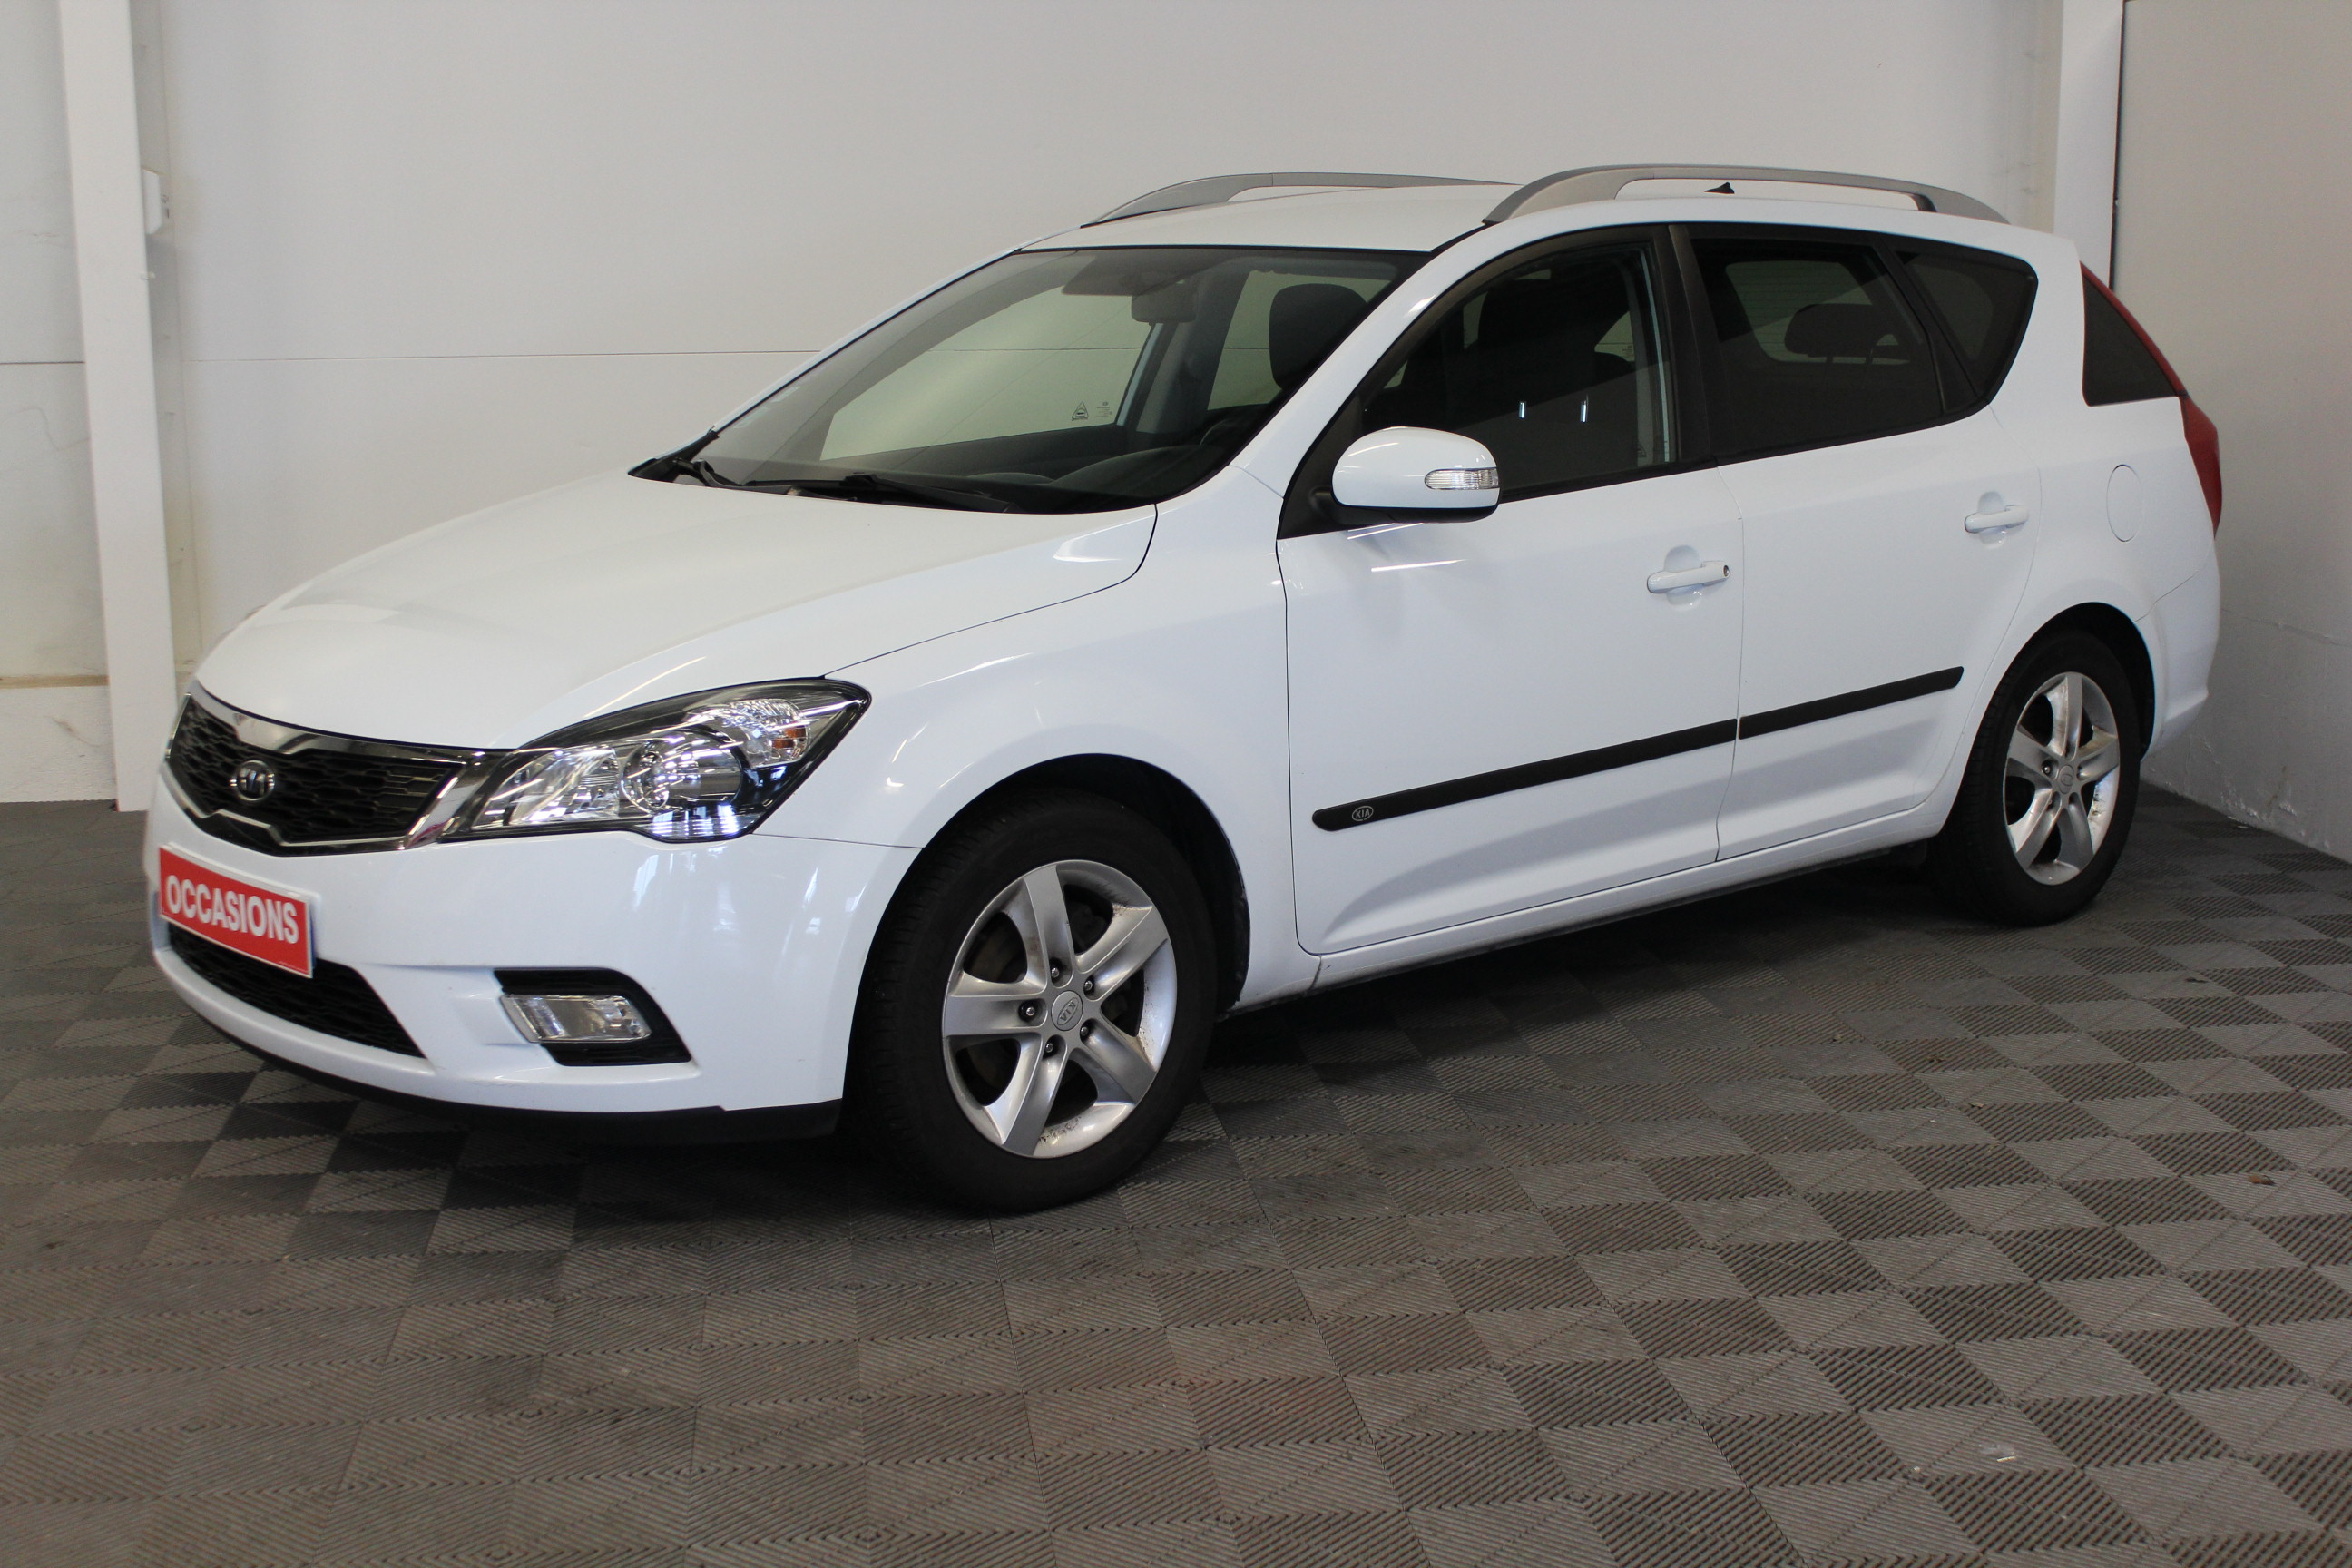 KIA CEE'D SW 2011 à 5400 € - Photo n°1